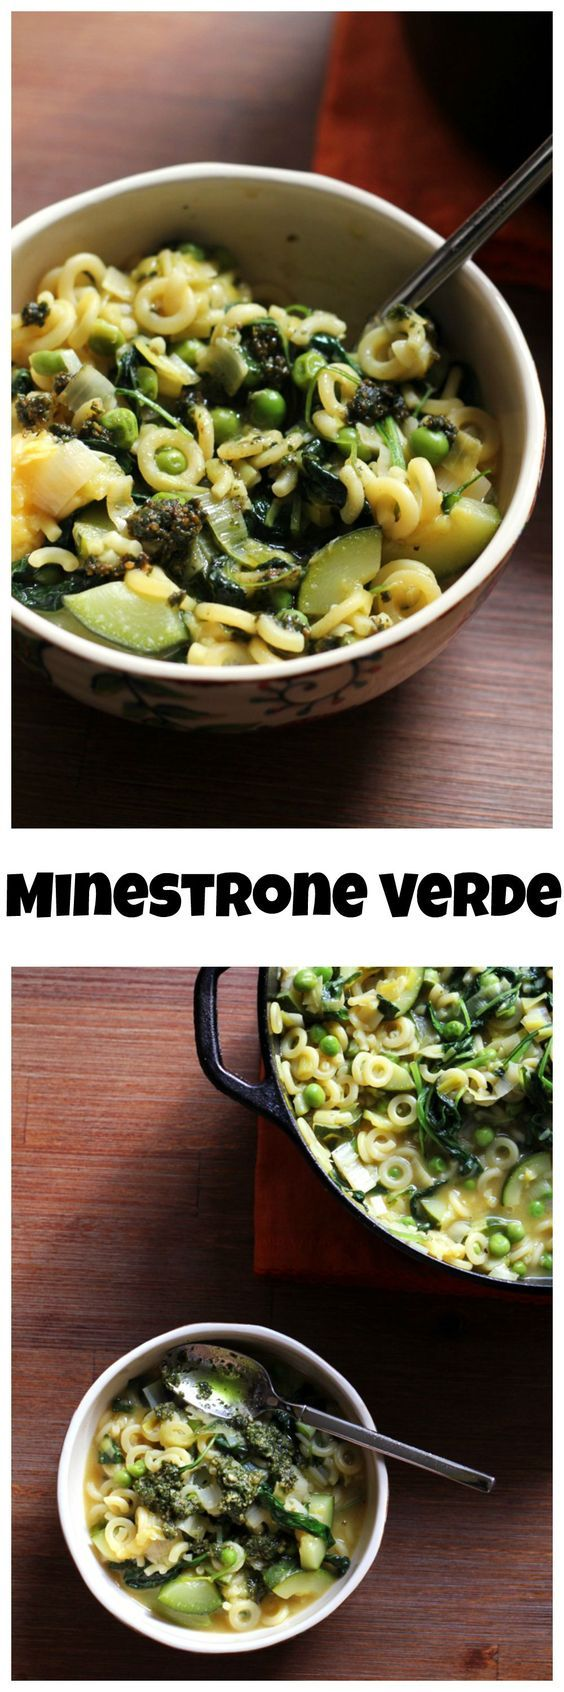 Minestrone is a hearty Italian vegetable soup that can be stuffed with just about any veggies your heart desires! It goes green in this minestrone verde, which is filled with the bright flavors of leeks, zucchini, peas, kale, and basil pesto.